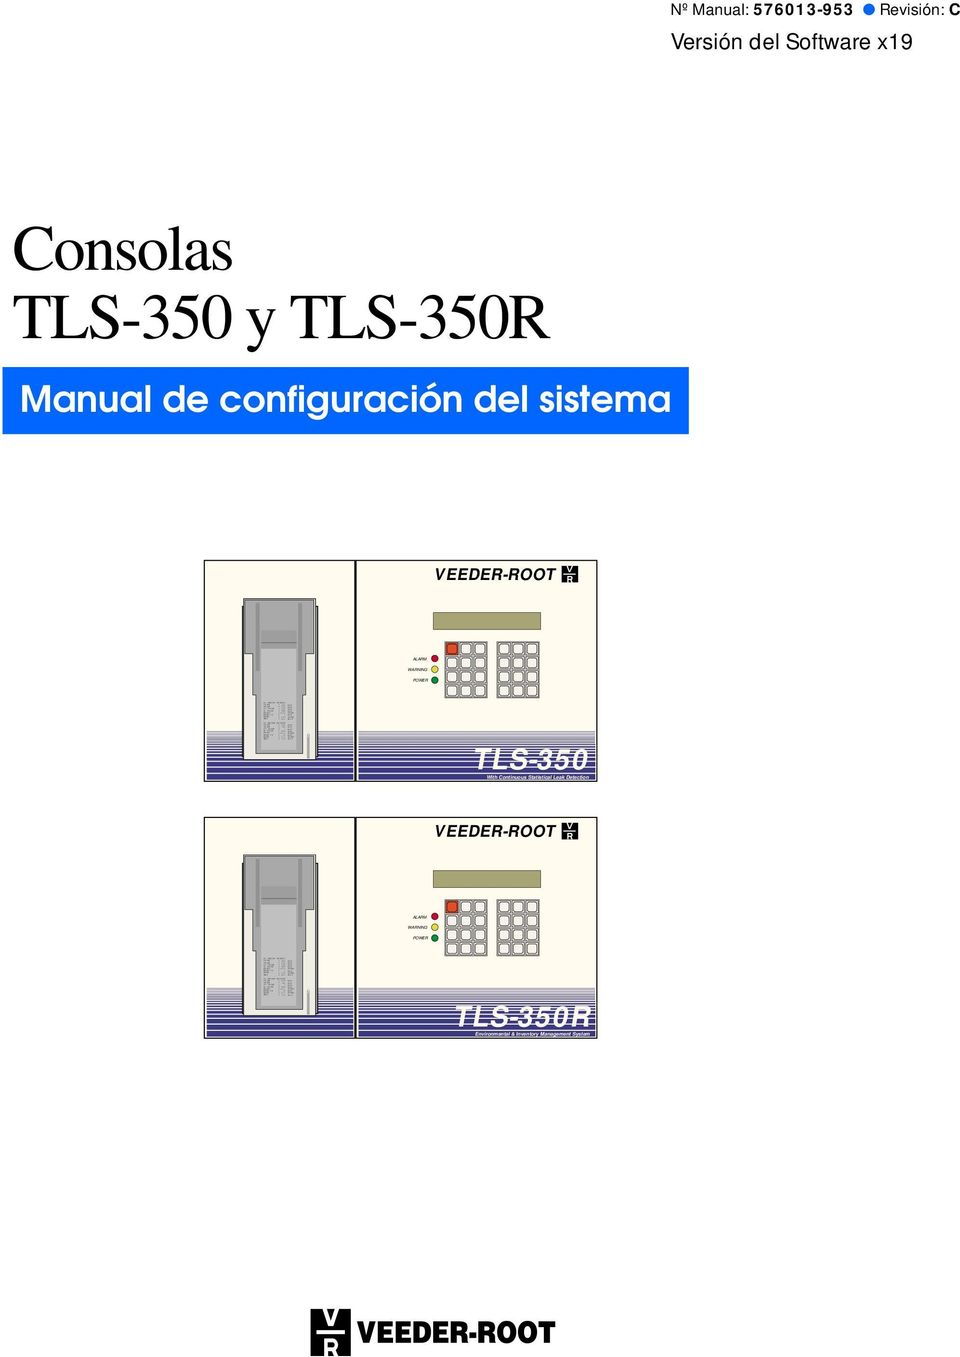 9 DEG F 9 DEG F Nº Manual: 576013-953 Revisión: C Versión del Software x19 Consolas TLS-350 y TLS-350R Manual de configuración del sistema VEEDER-ROOT ALARM WARNING POWER TLS-350 With Continuous